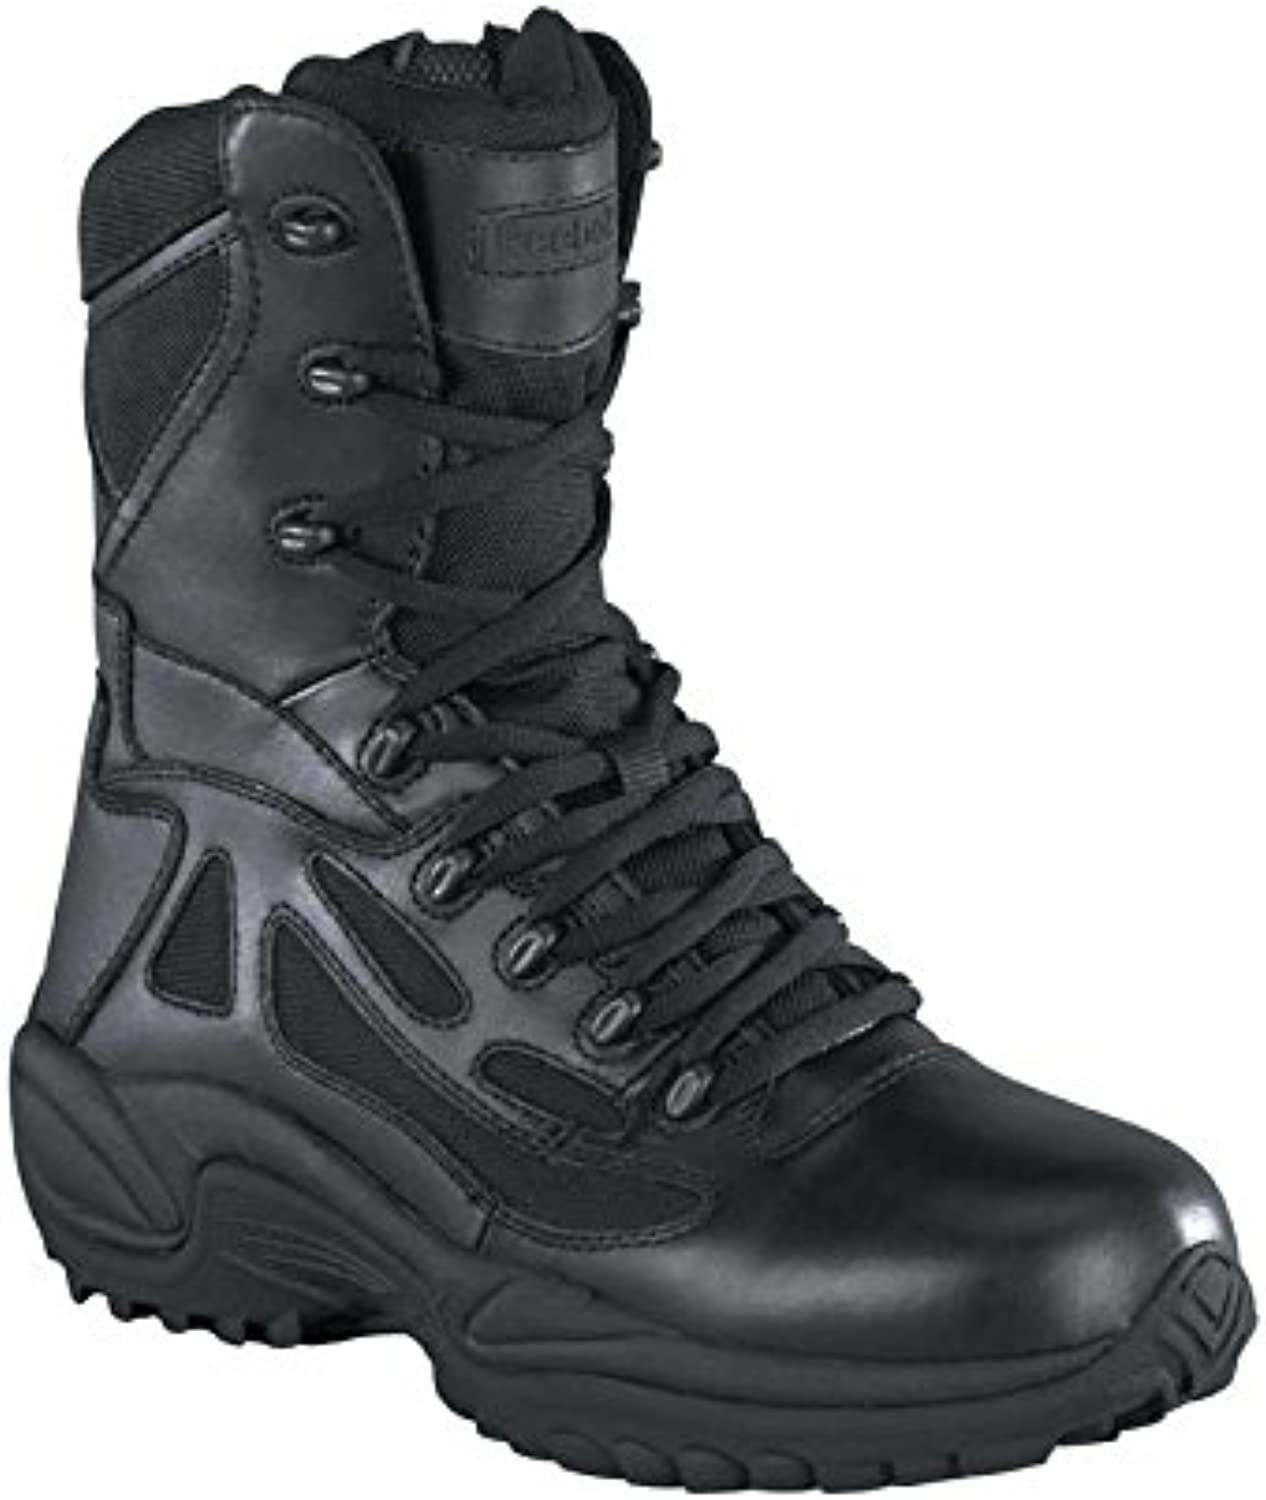 Reebok Men's 8  Rapid Response RB Soft Toe Combat Boot Black 5.5 M US